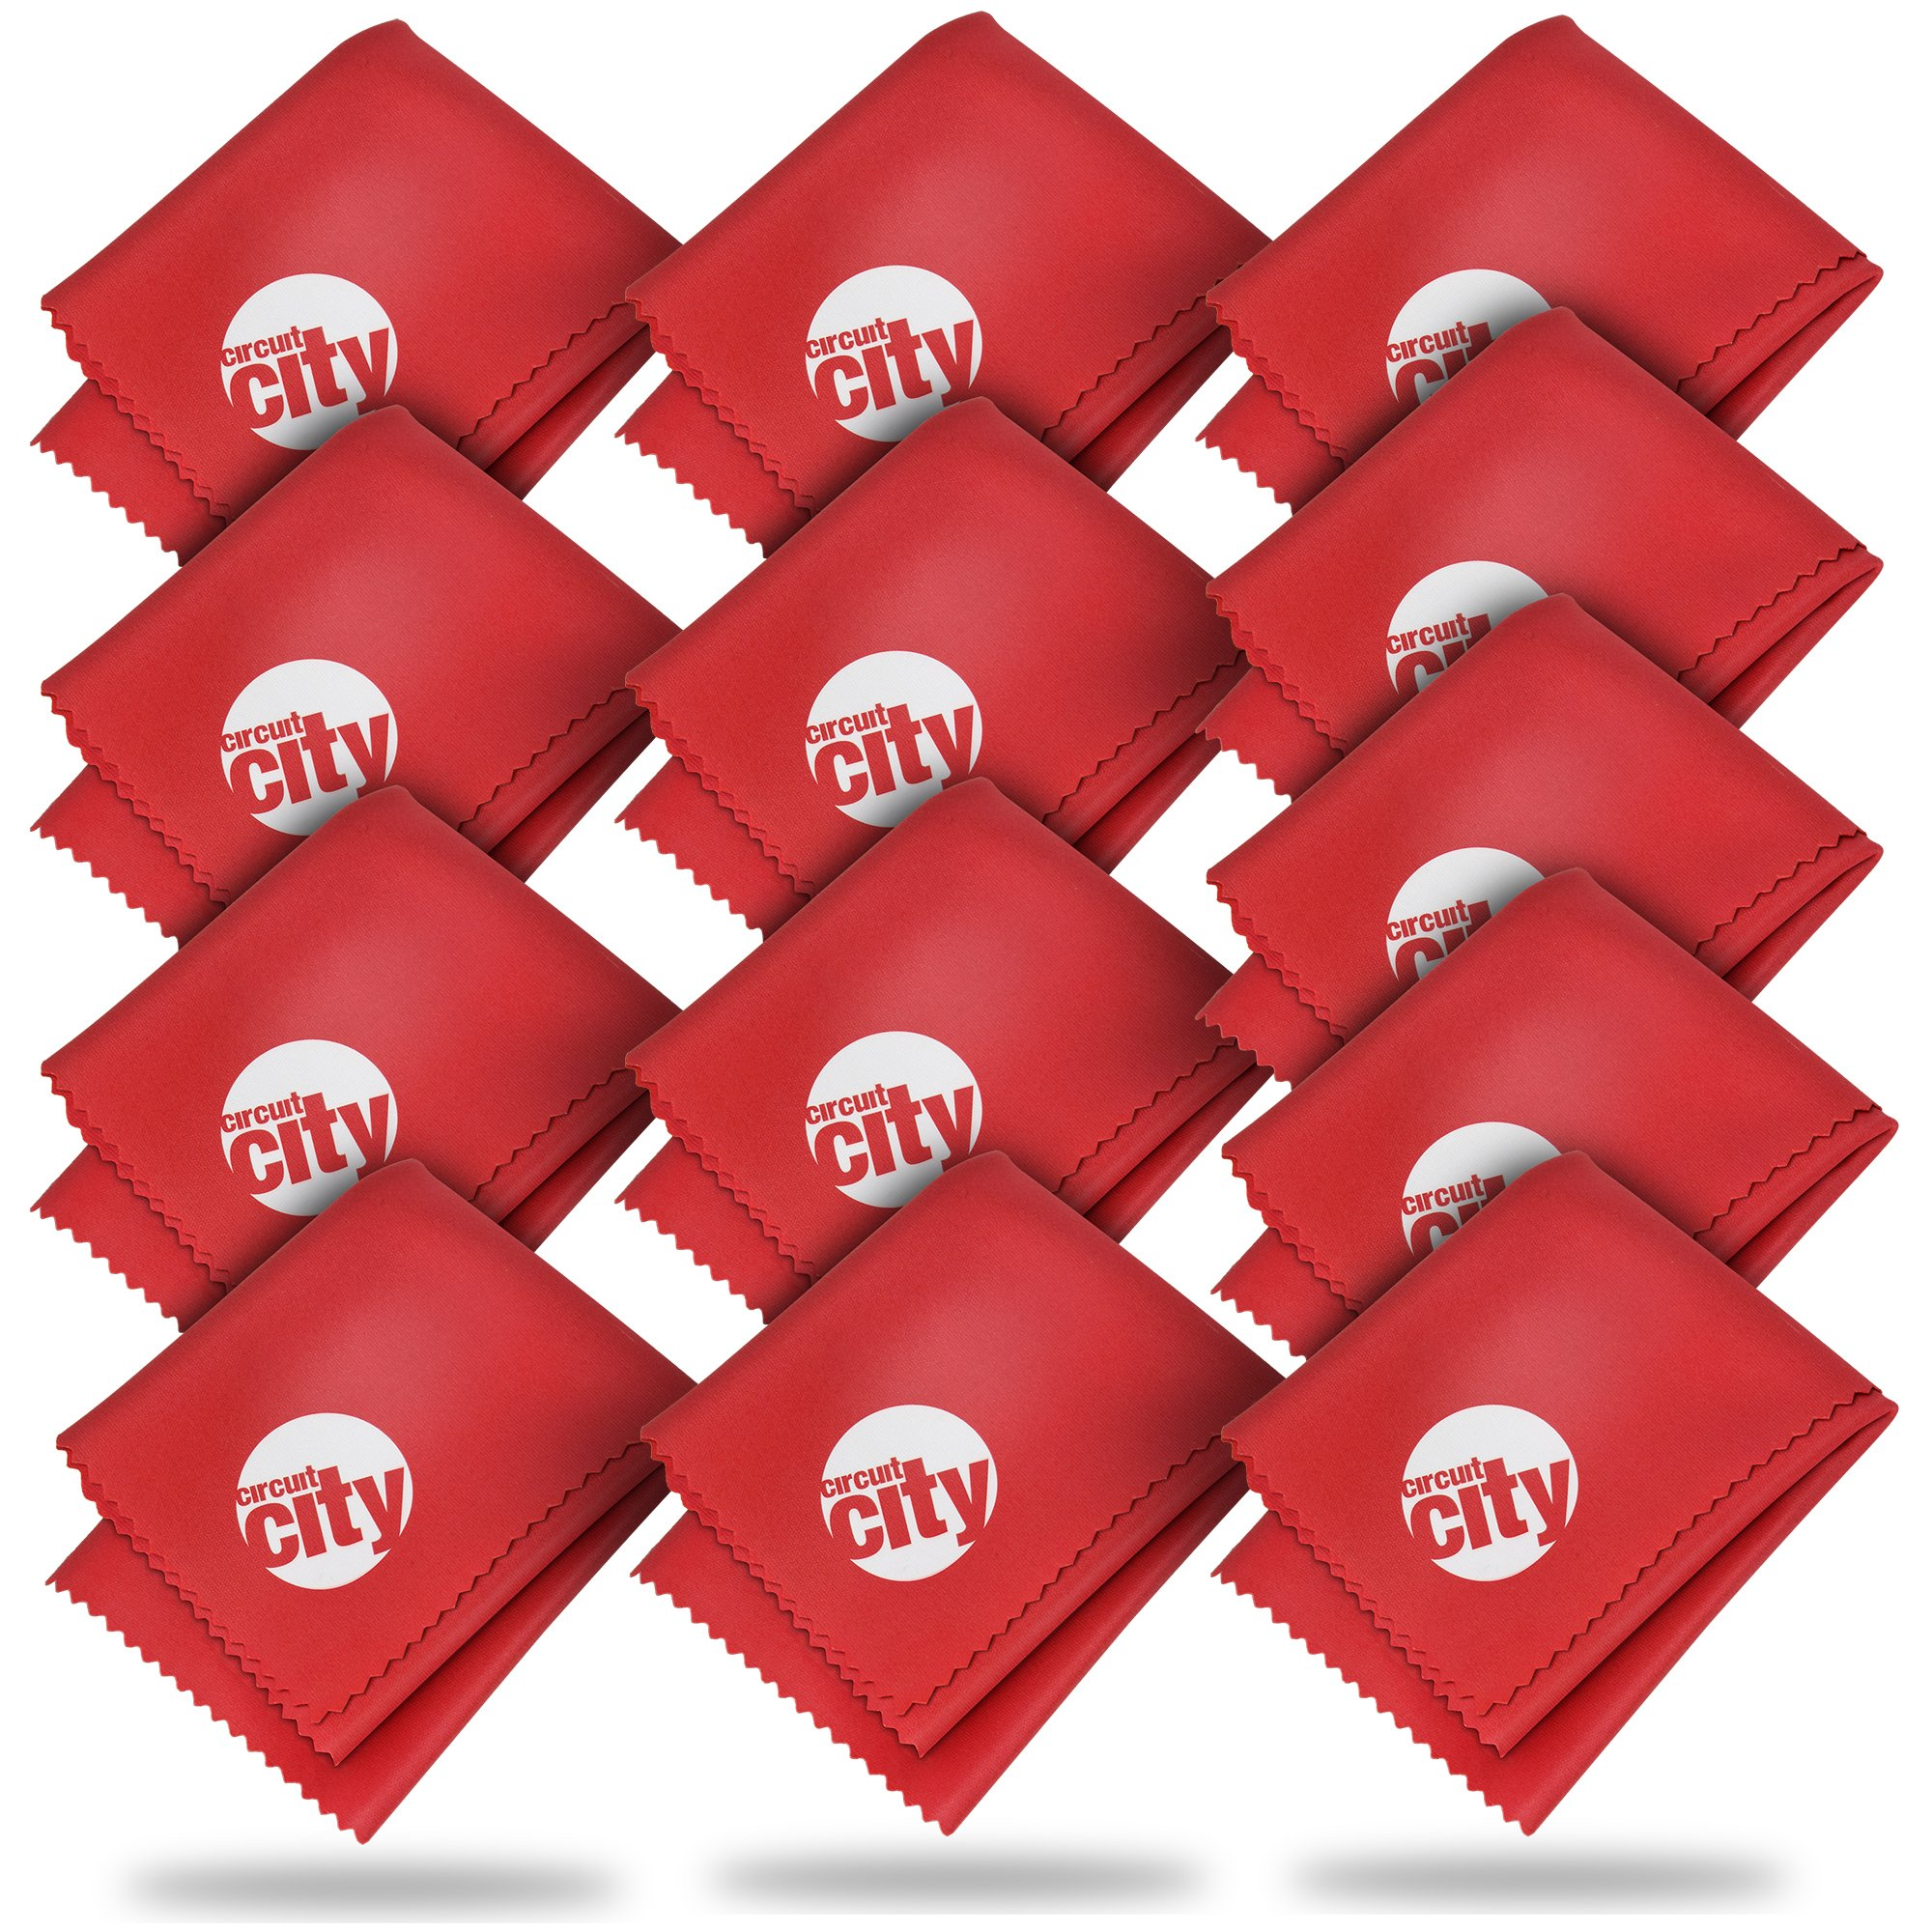 (13 Pack) Circuit City Premium Microfiber Cleaning Cloths for Tablets, Cell Phones, Laptops, LCD TV Screens, Lenses, and More (Red) by Circuit City